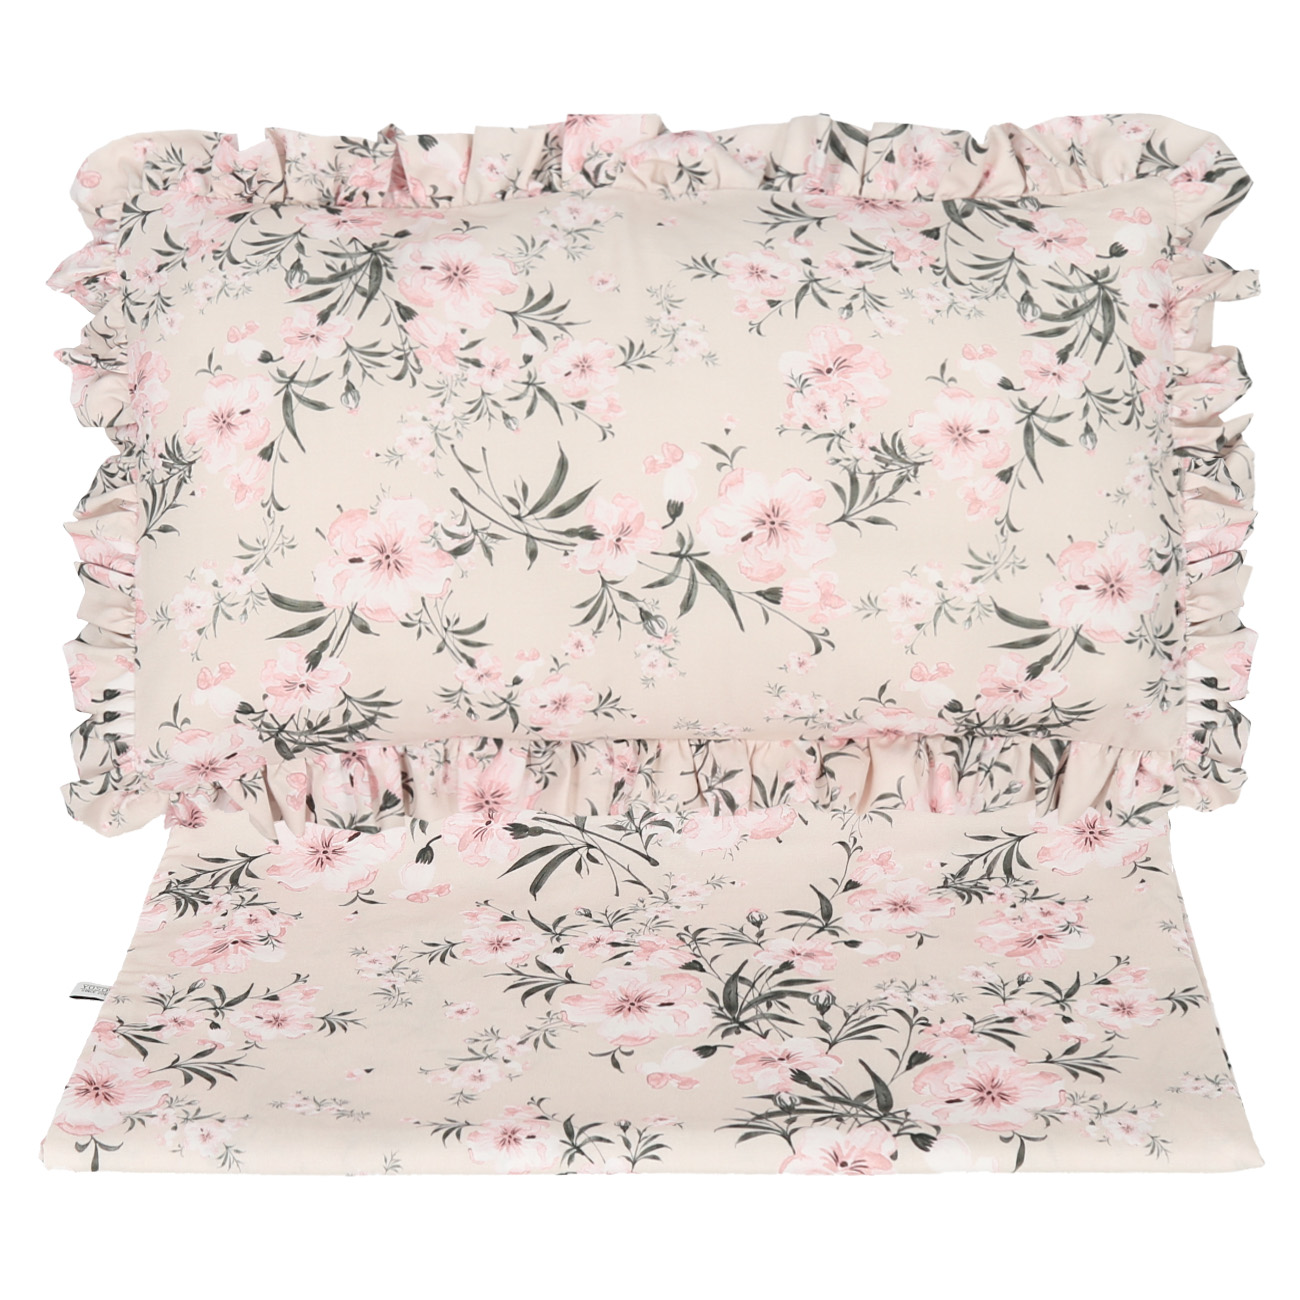 KOMPLET POSZEWEK NA POŚCIEL - SET OF BEDDING COVERS FLOWERS ON THE BEIGE YOSOY